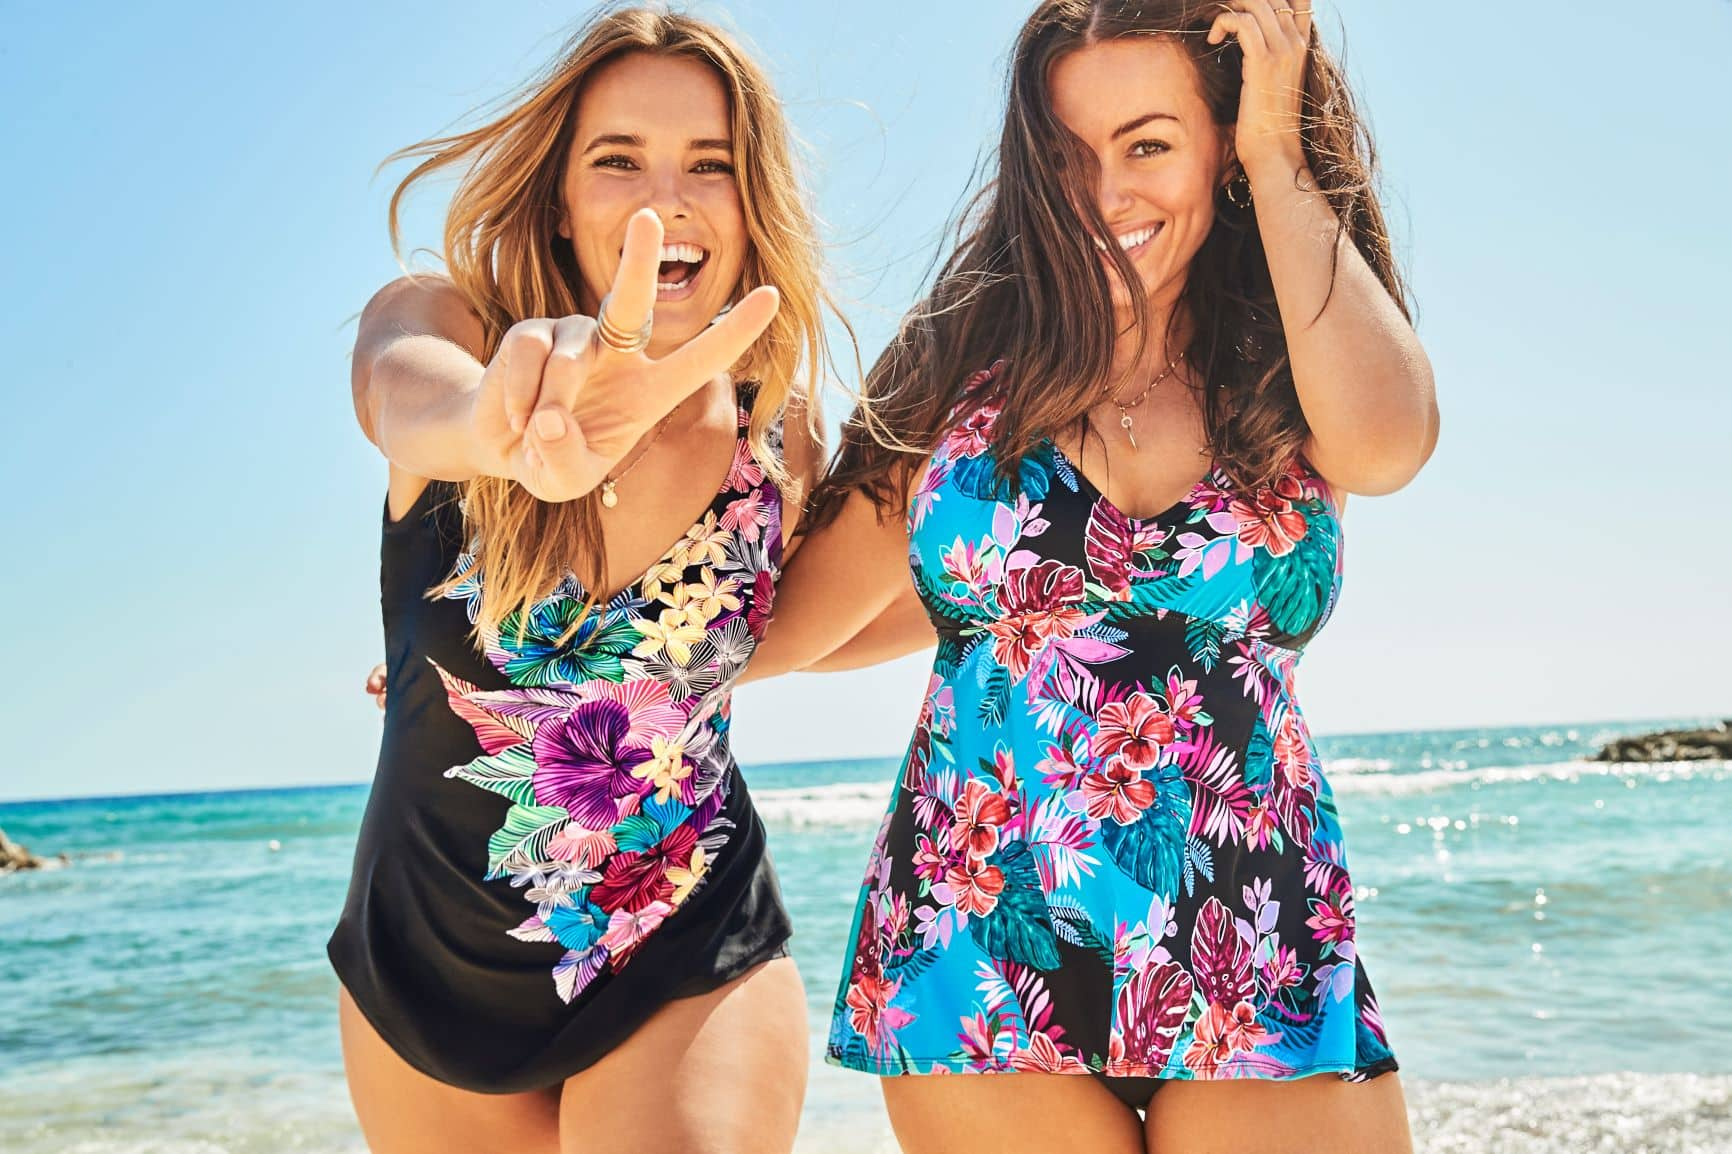 Swimsuits4All: 60% Off Sitewide Sale! Use Coupon Code: 819FLASH Valid only today 8/7